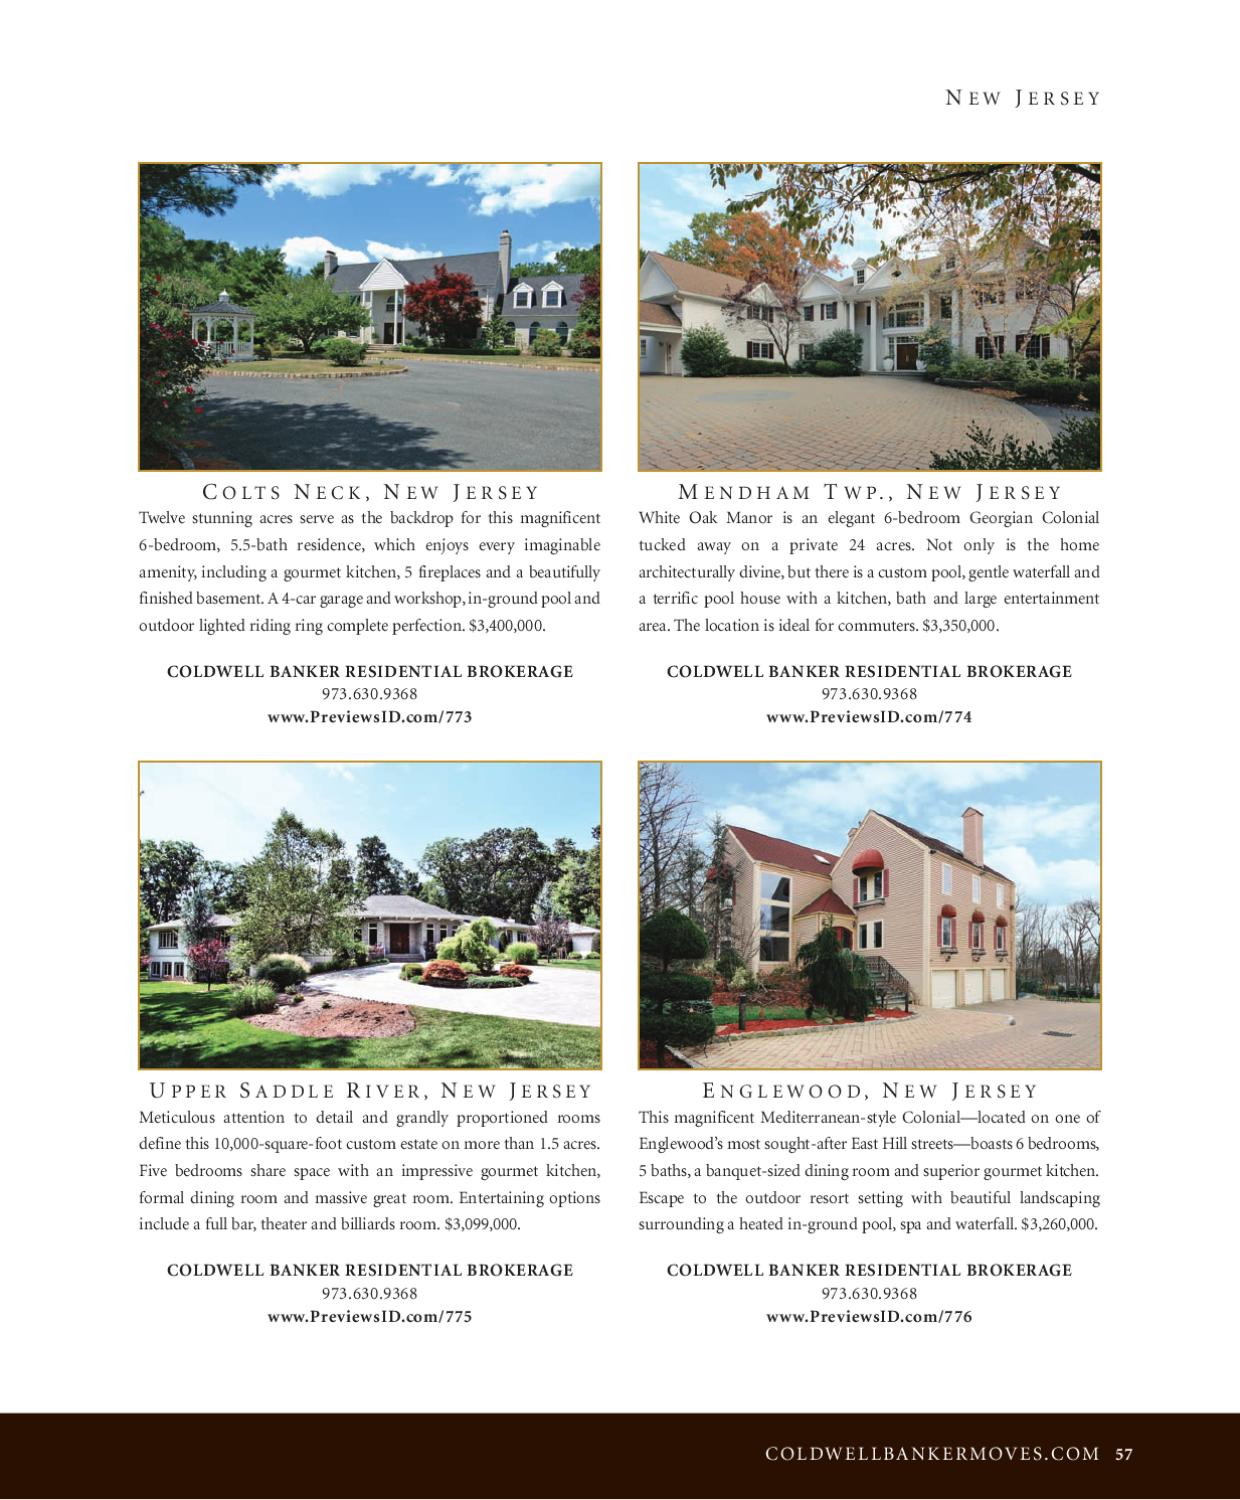 Unique Homes Ultimate Issue 2011 by Network Communications, Inc. - issuu